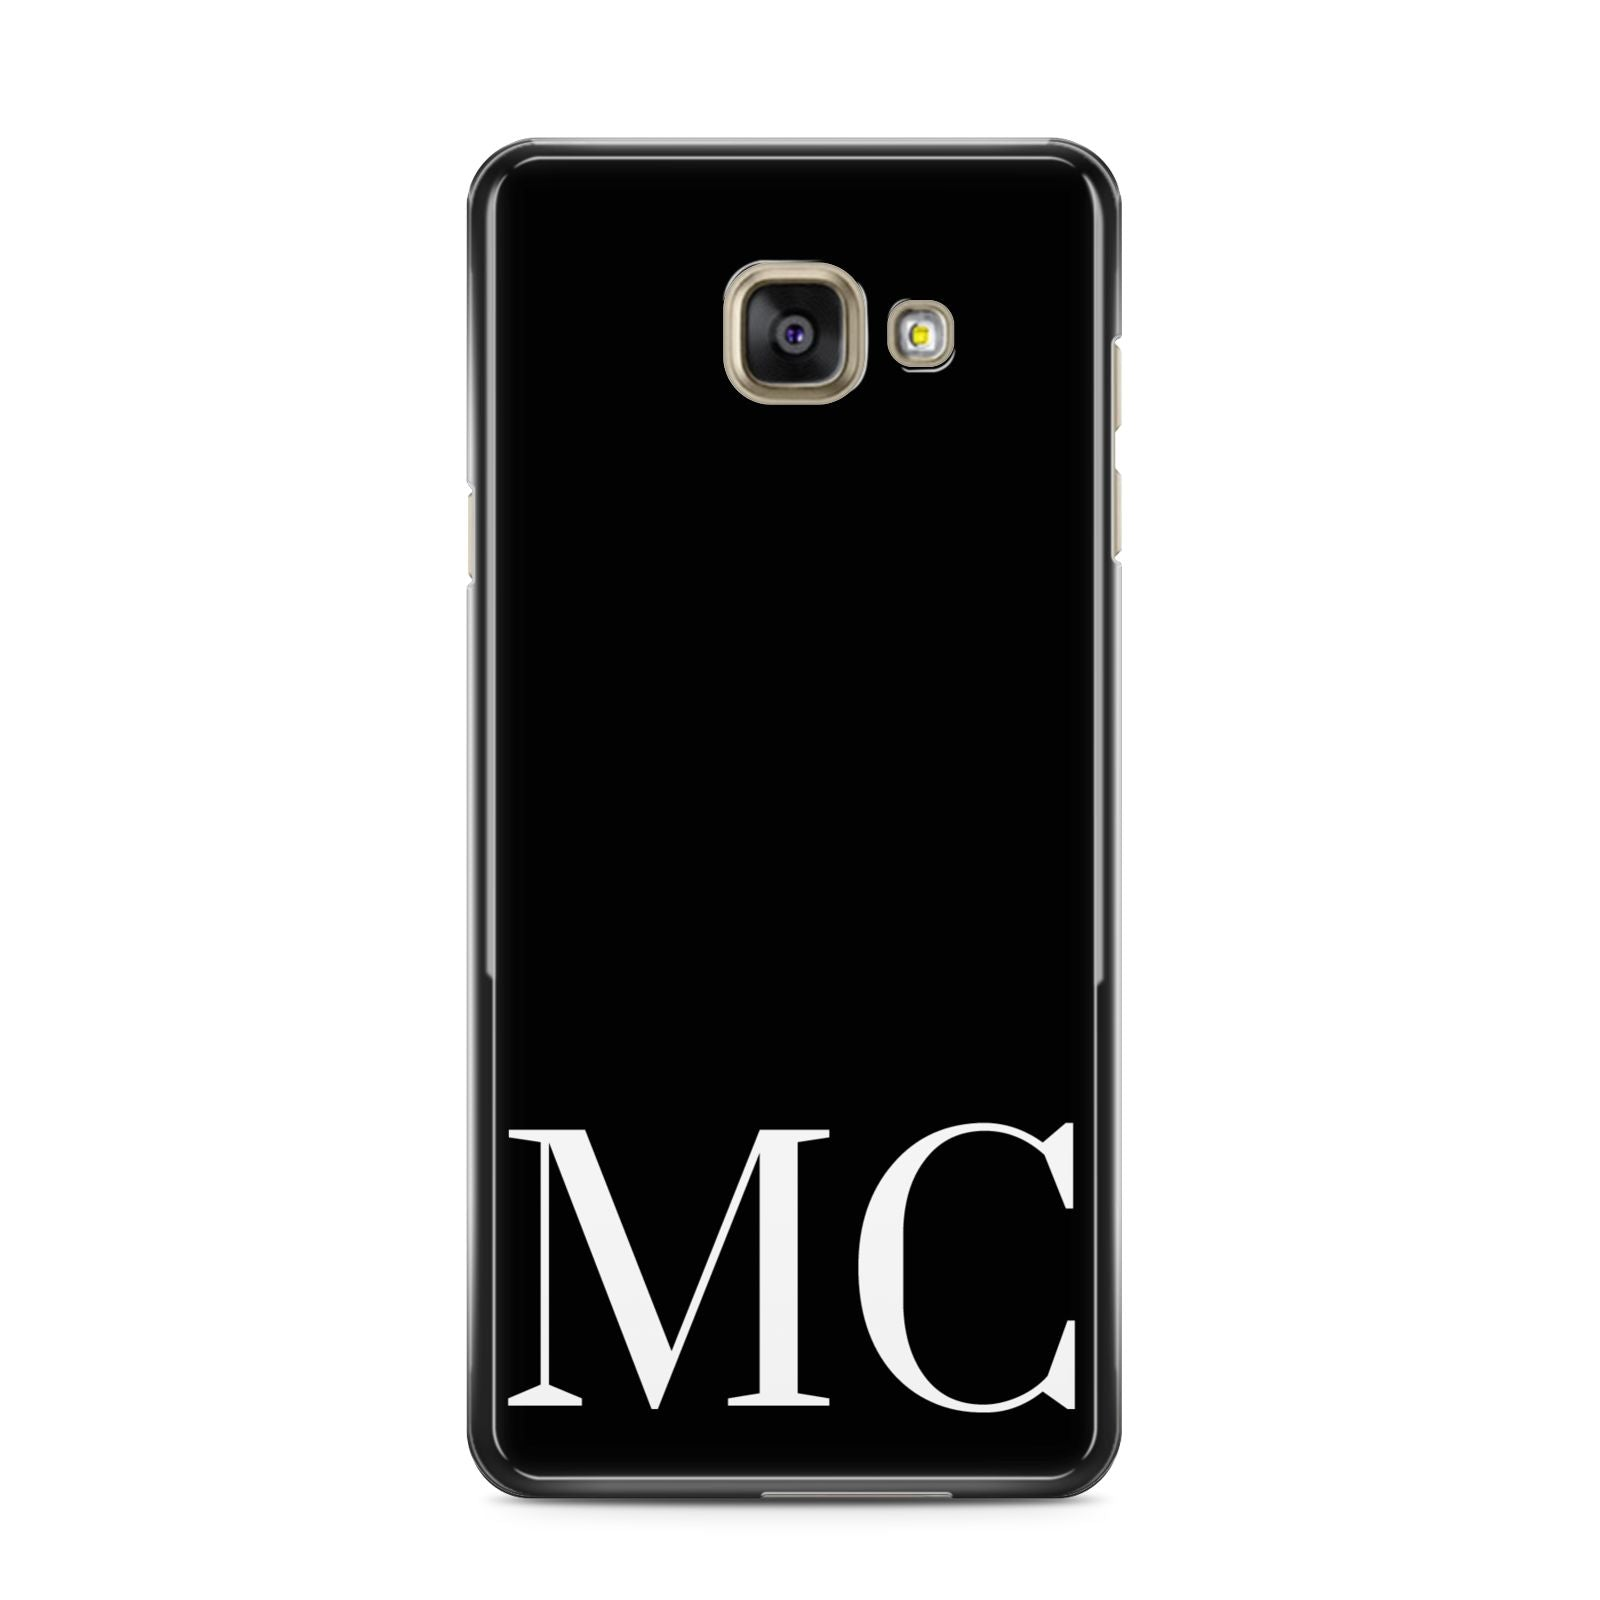 Initials Personalised 1 Samsung Galaxy A3 2016 Case on gold phone